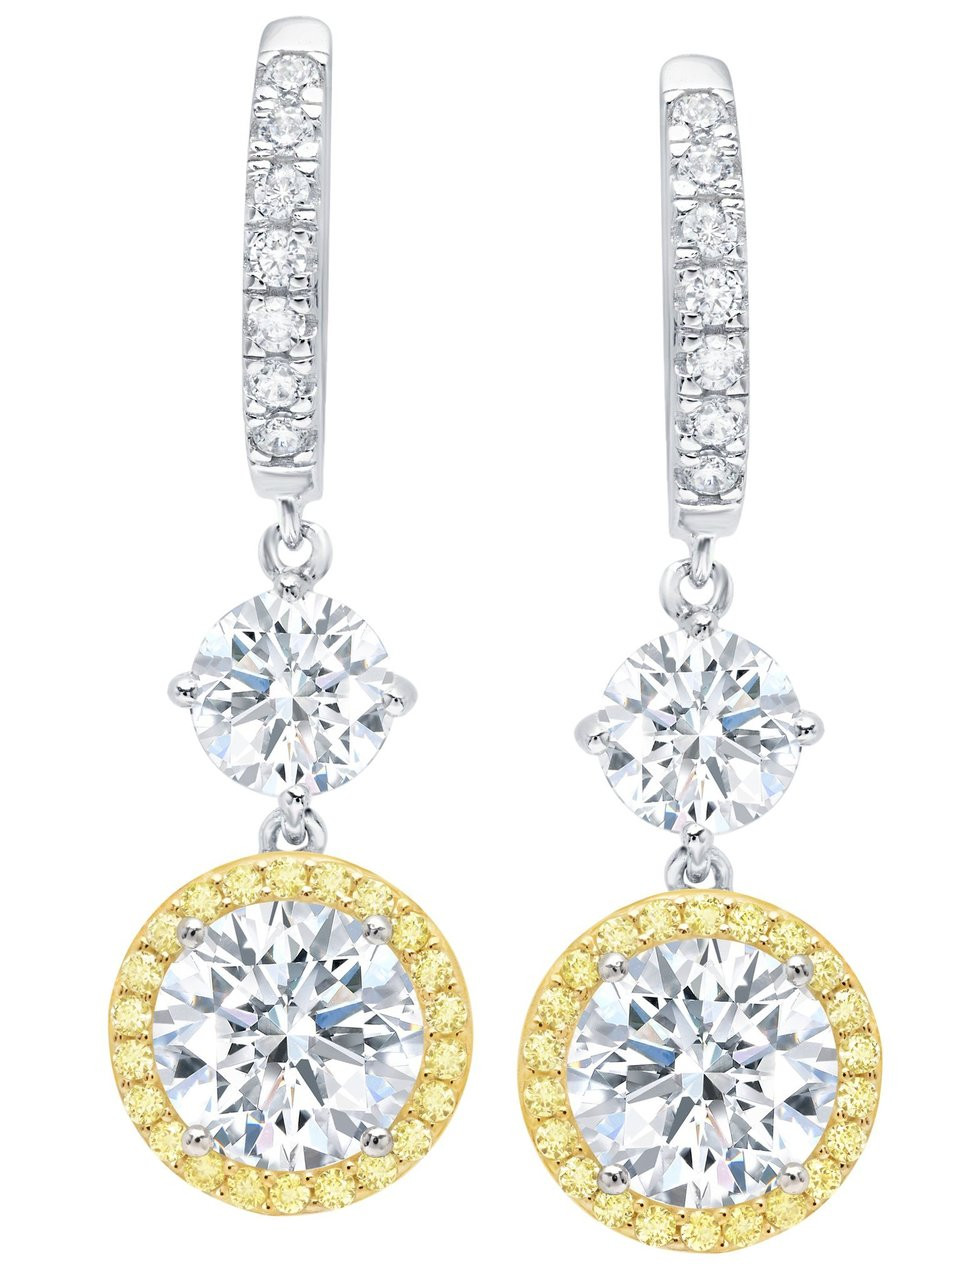 tw earrings yellow round to mv zoom hover diamond cut tone canary gold kay kaystore zm en two ct